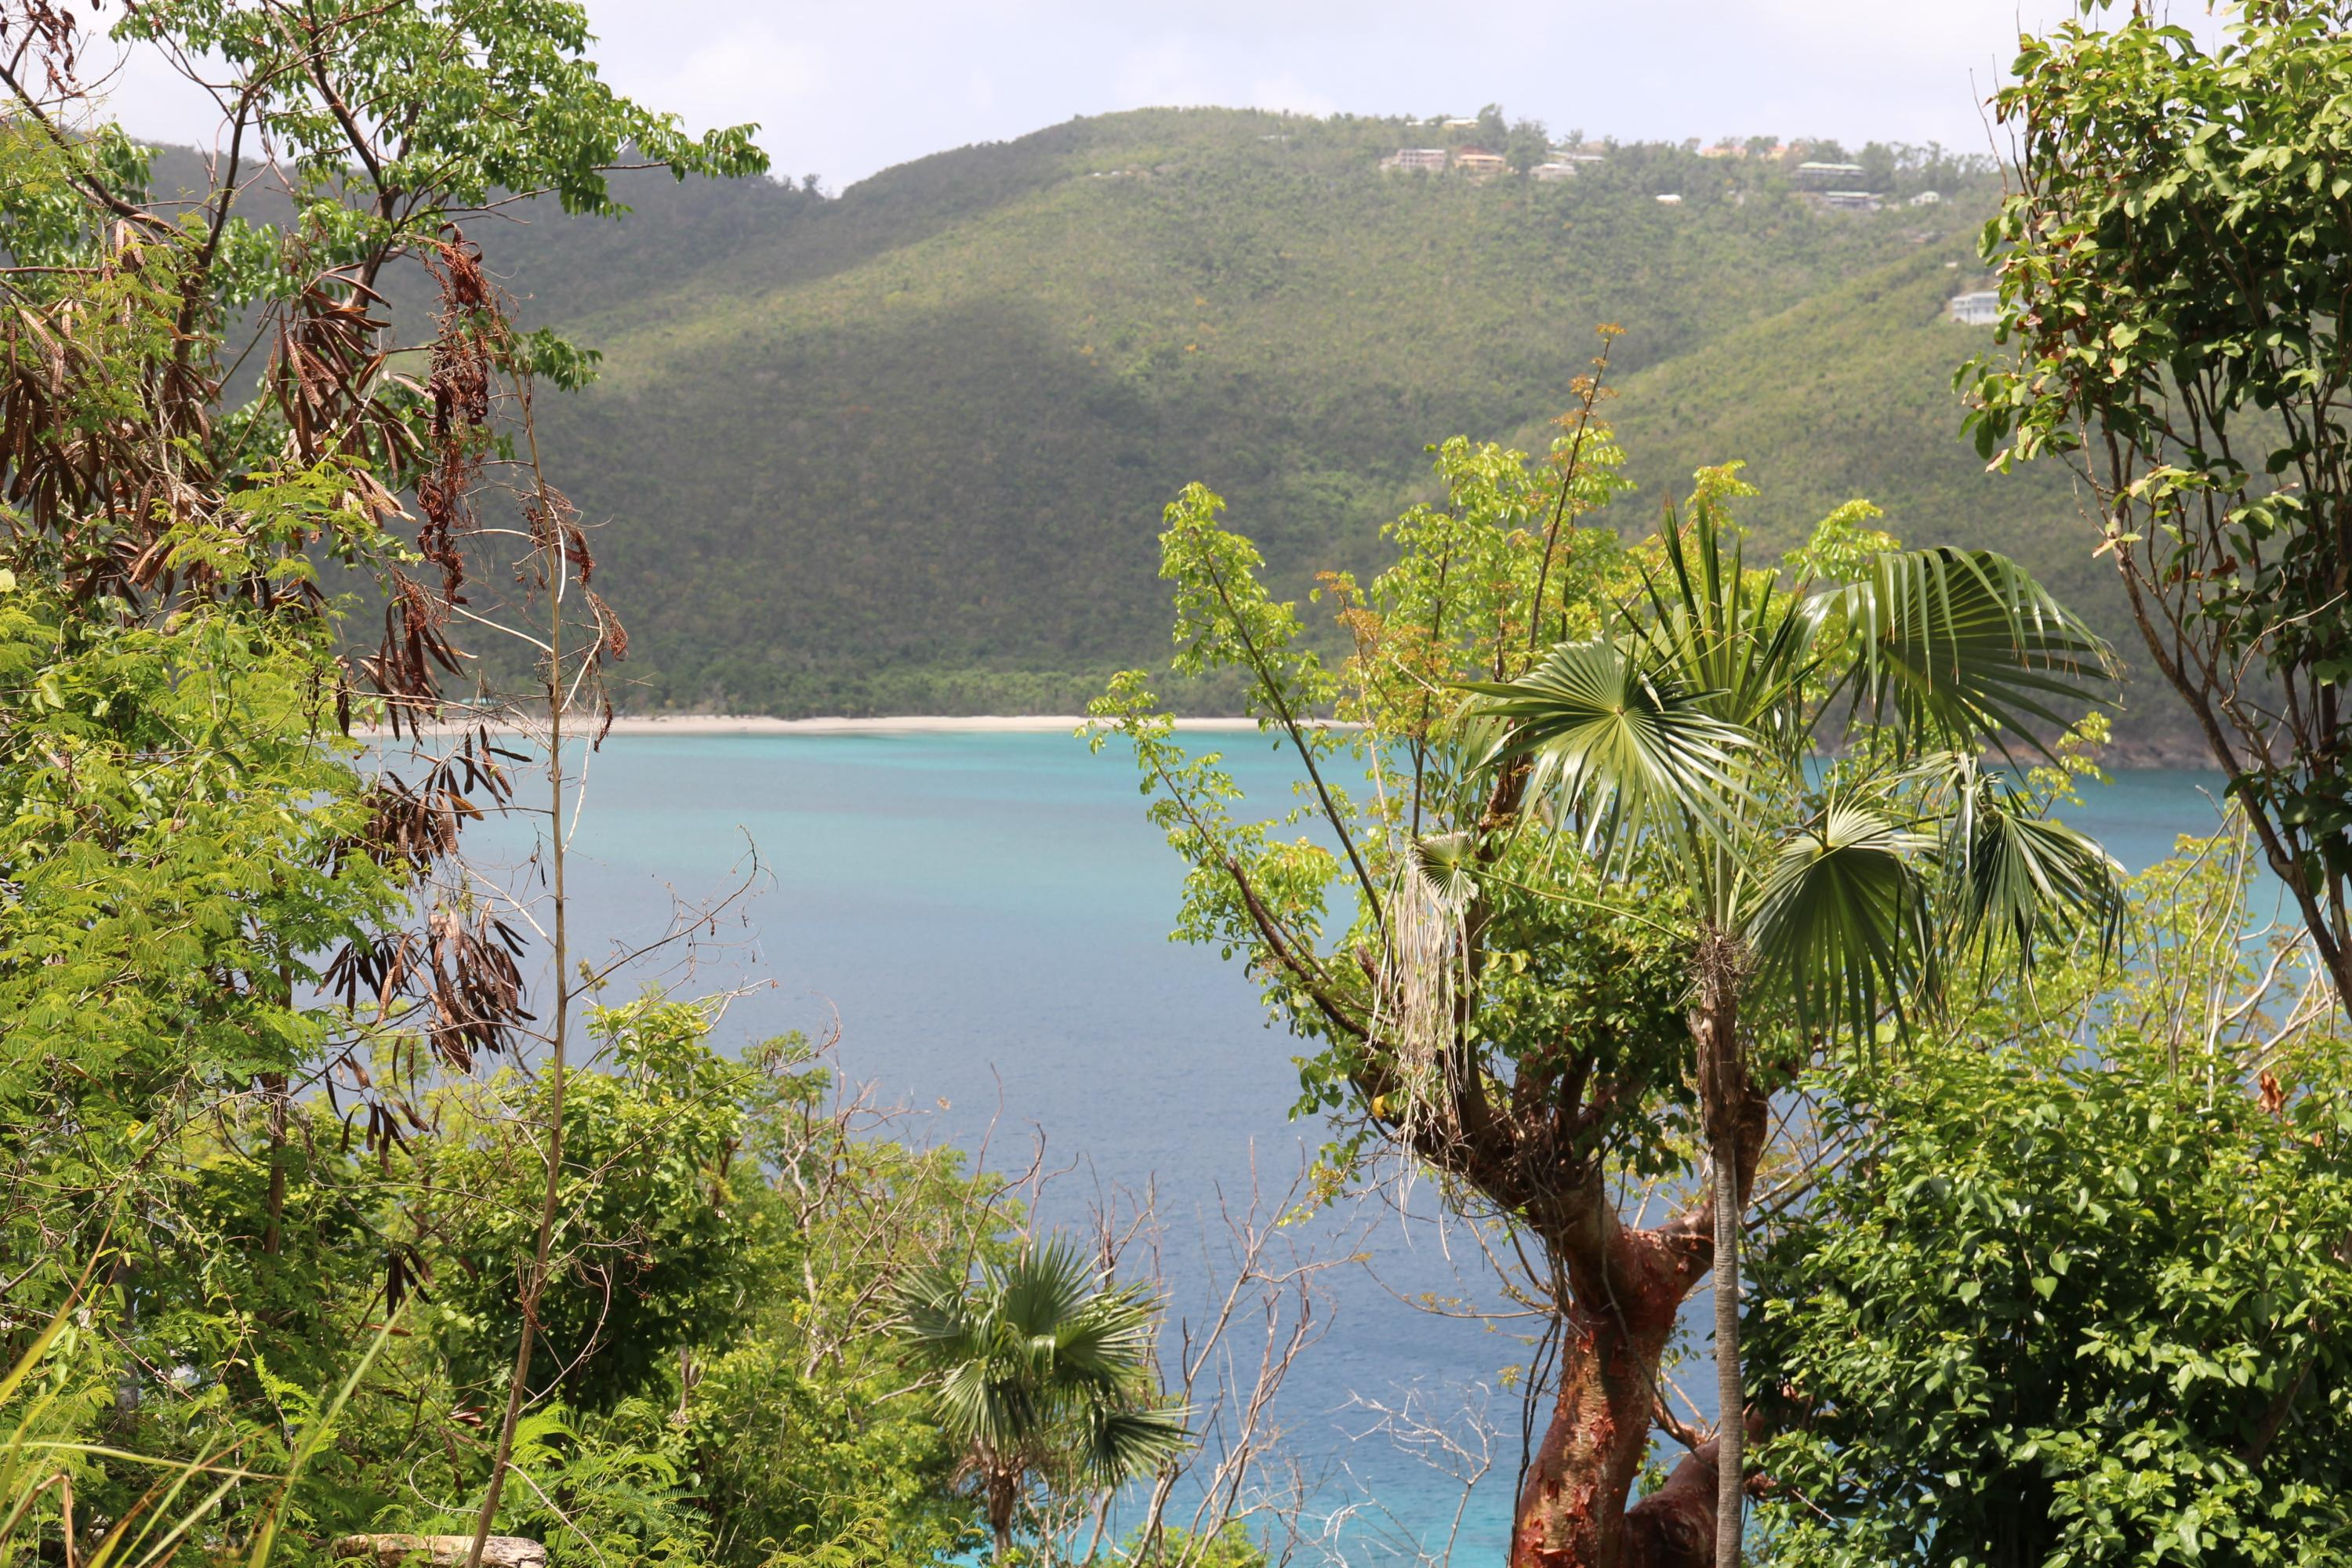 Land for Sale at 10-1-8 Peterborg GNS 10-1-8 Peterborg GNS St Thomas, Virgin Islands 00802 United States Virgin Islands